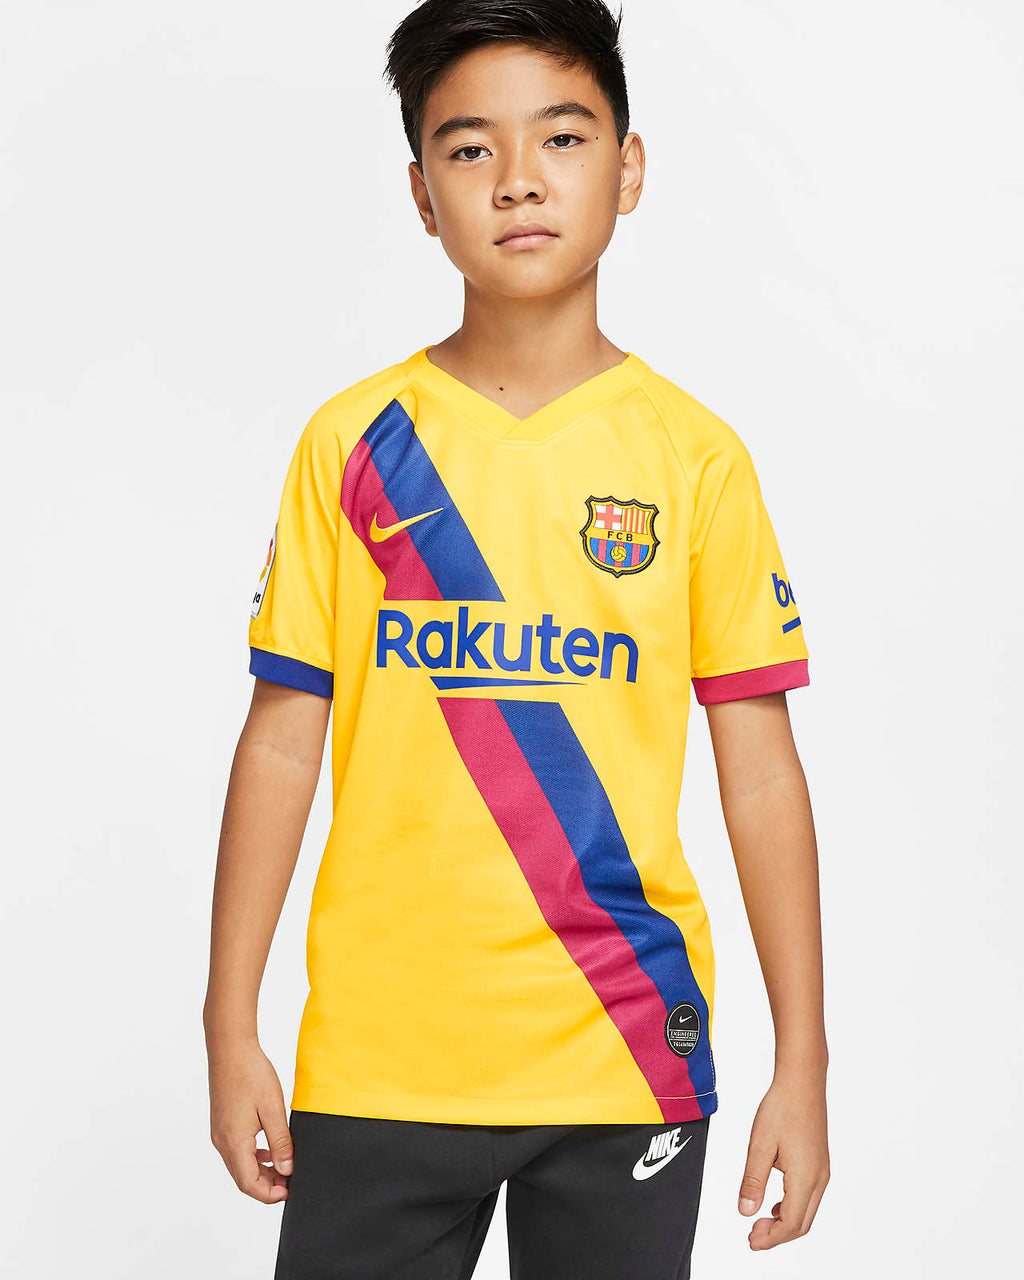 Nike Junior FC Barcelona Away 19/20 Shirt    Medium 10-12yrs.  .   AJ5800-728